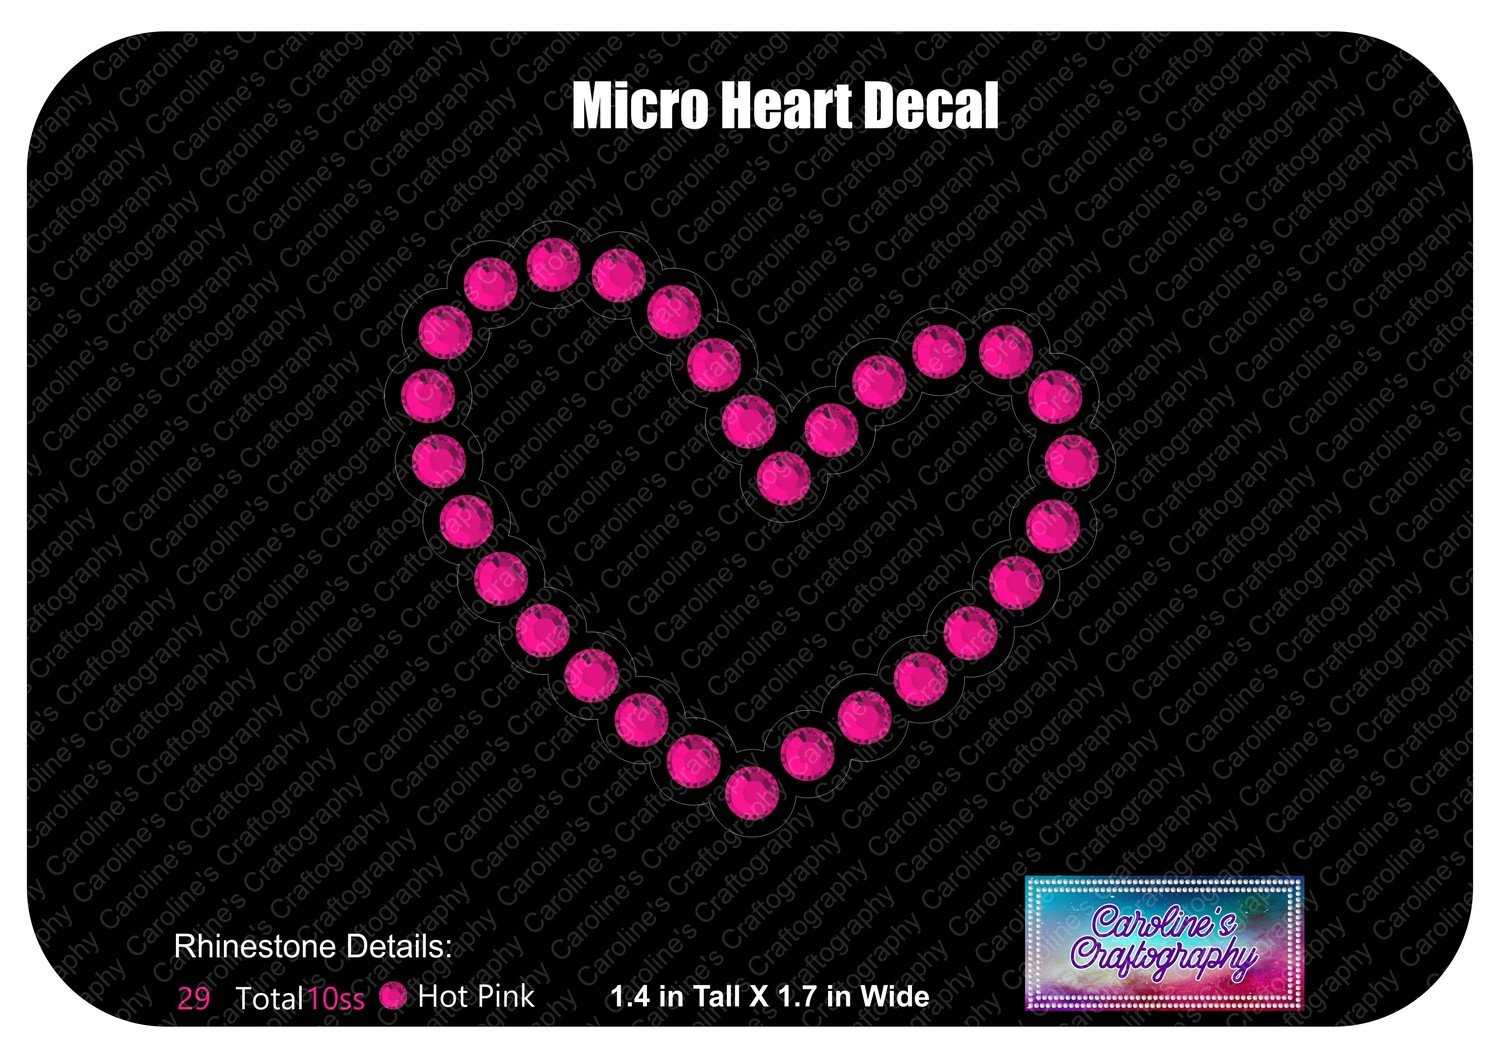 Micro Heart Decal